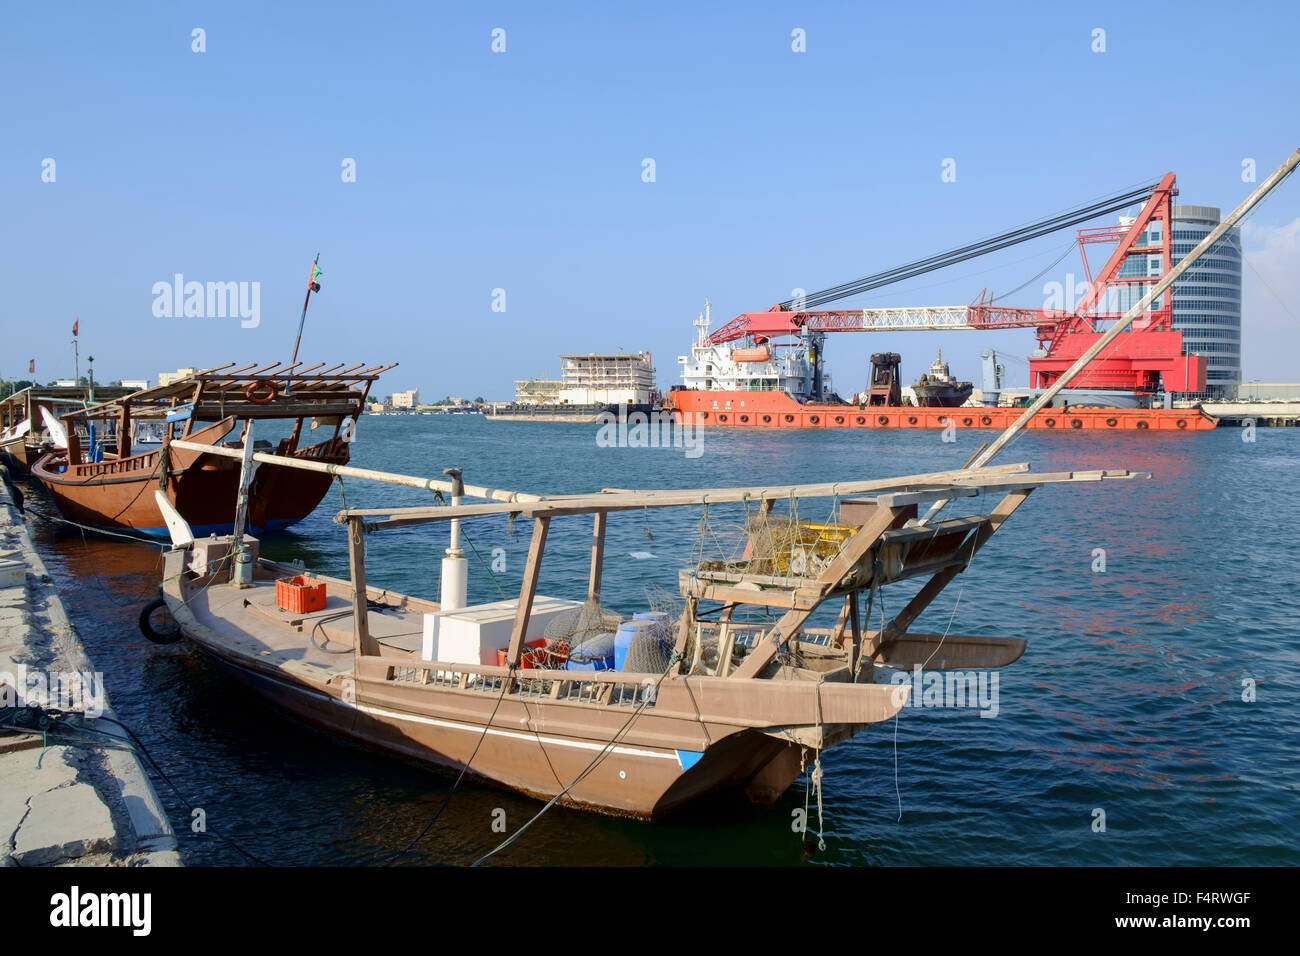 View of traditional and modern ships in port at Ras al Khaimah emirate in United Arab Emirates - Stock Image